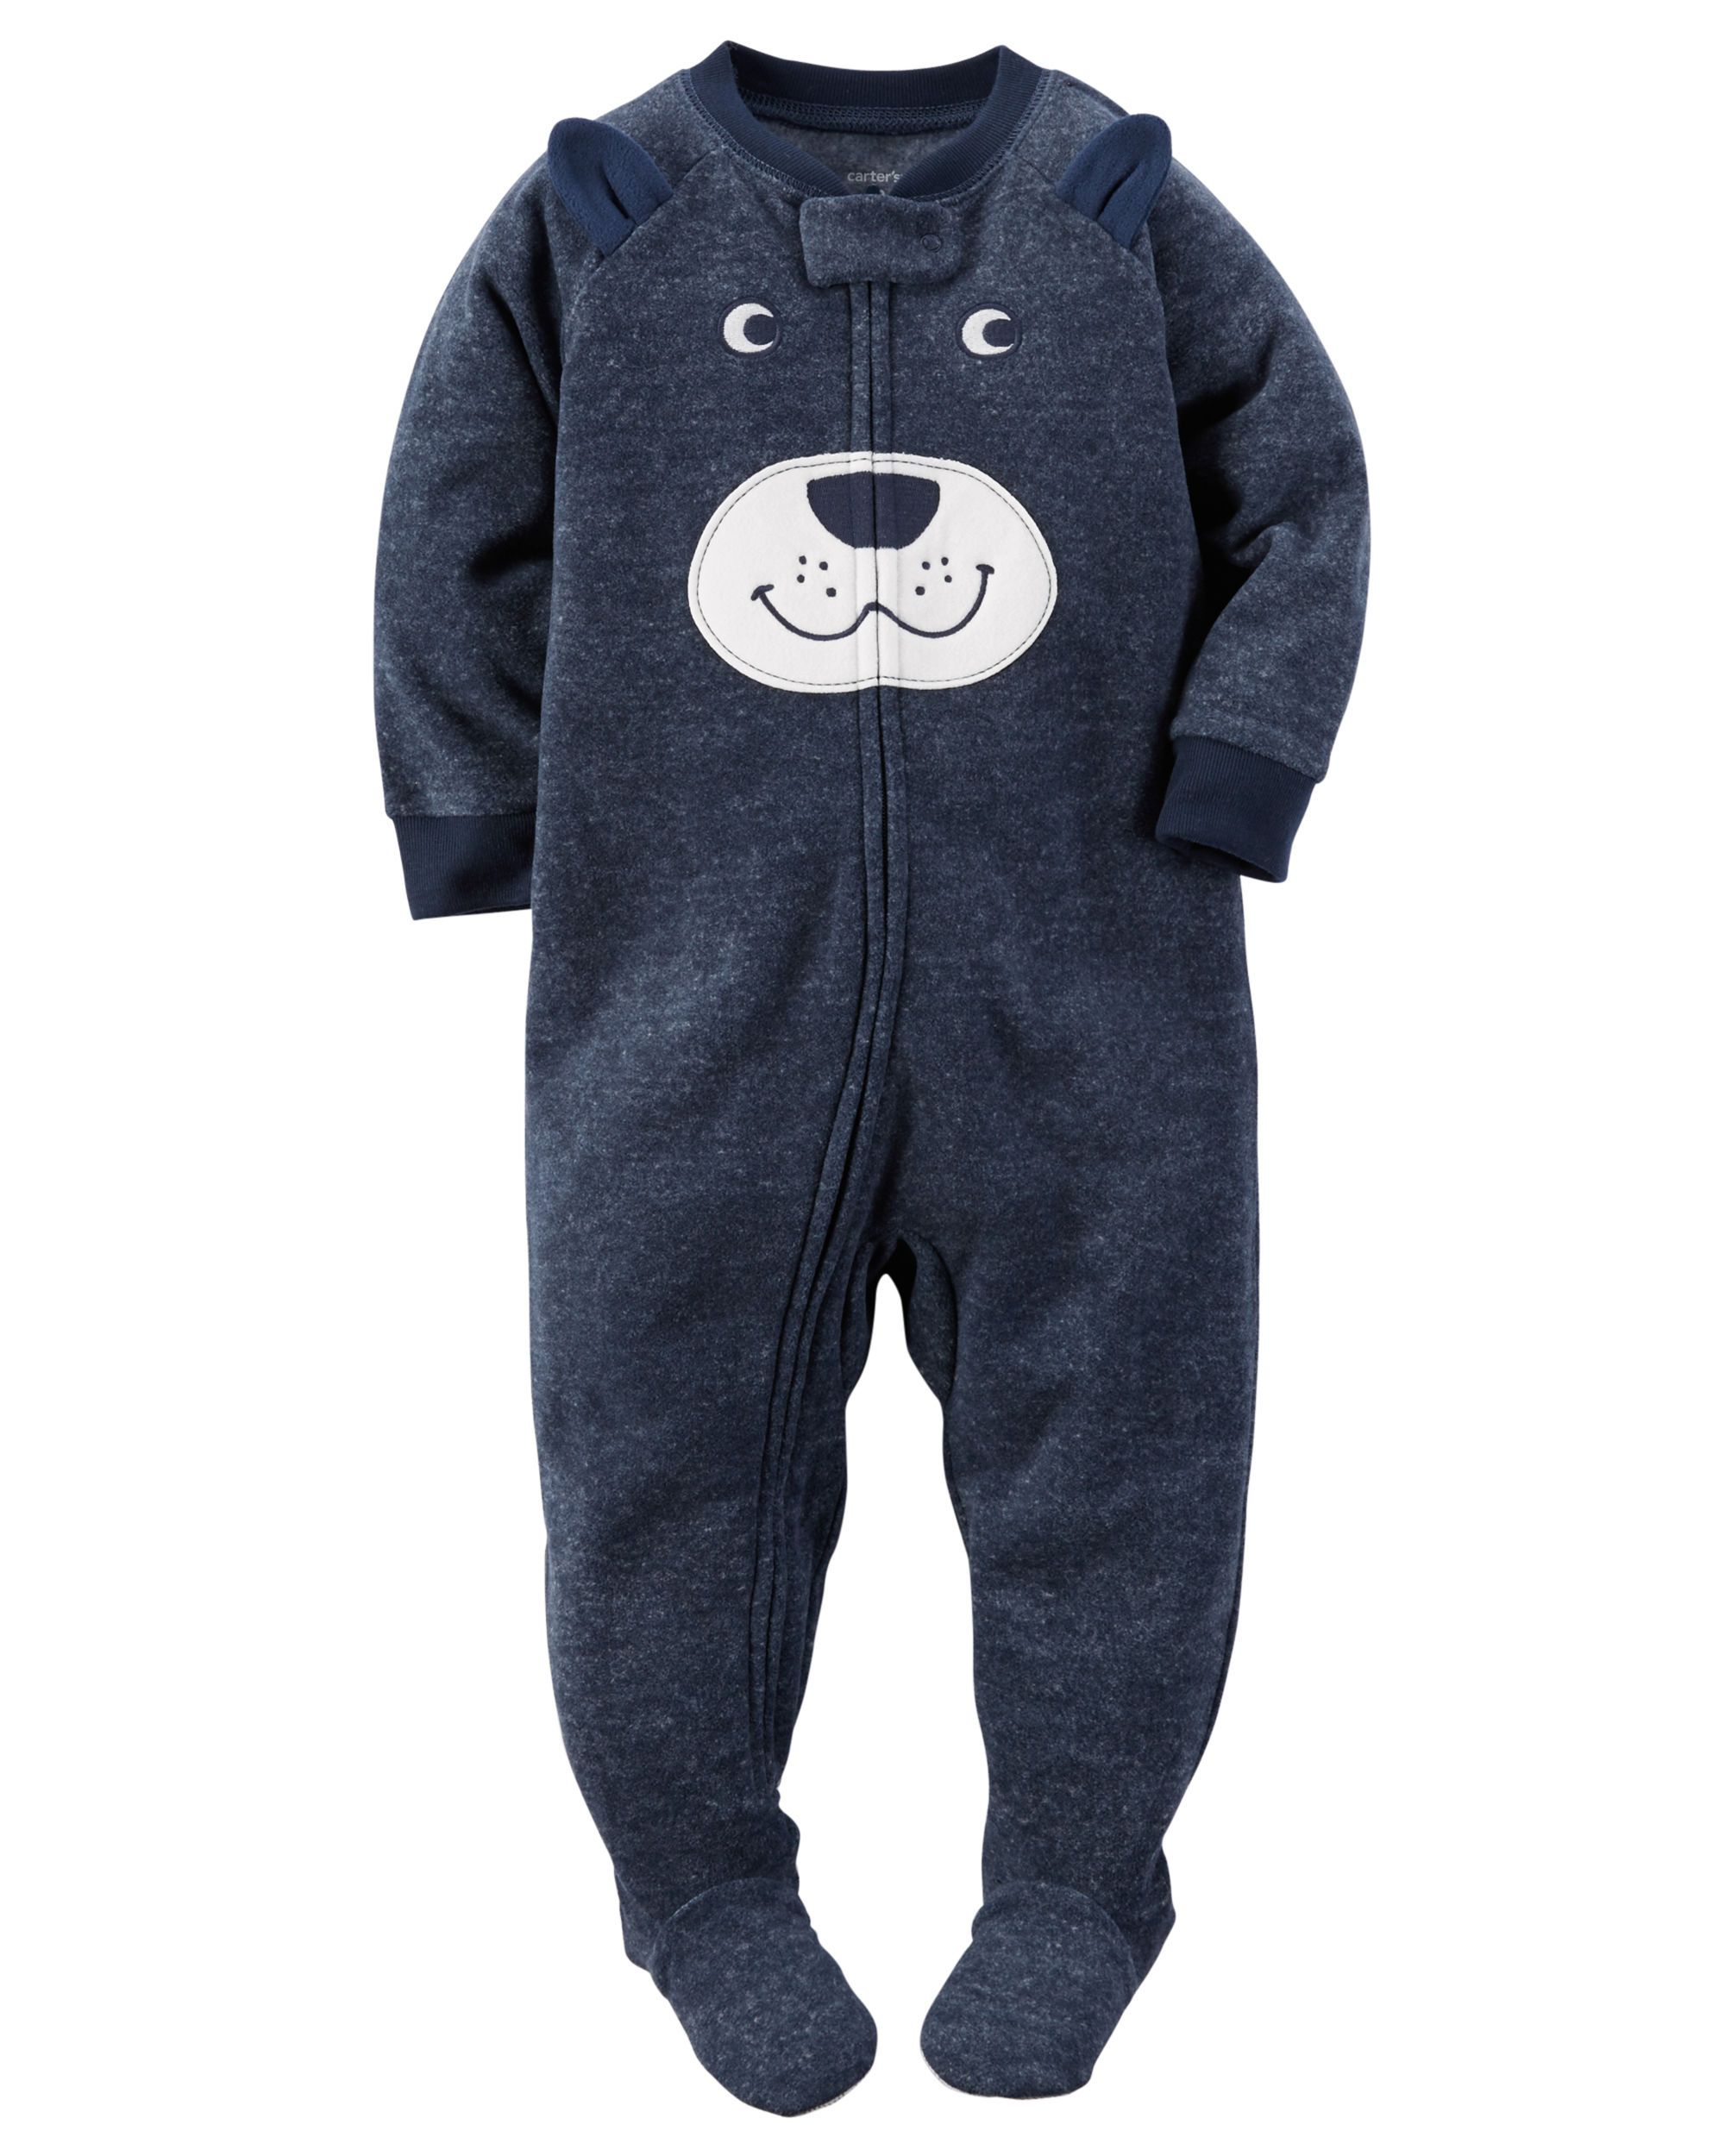 7d492791af608 3T IN FOOTIE PJ'S Toddler Boy 1-Piece Fleece PJs from Carters.com. Shop  clothing & accessories…